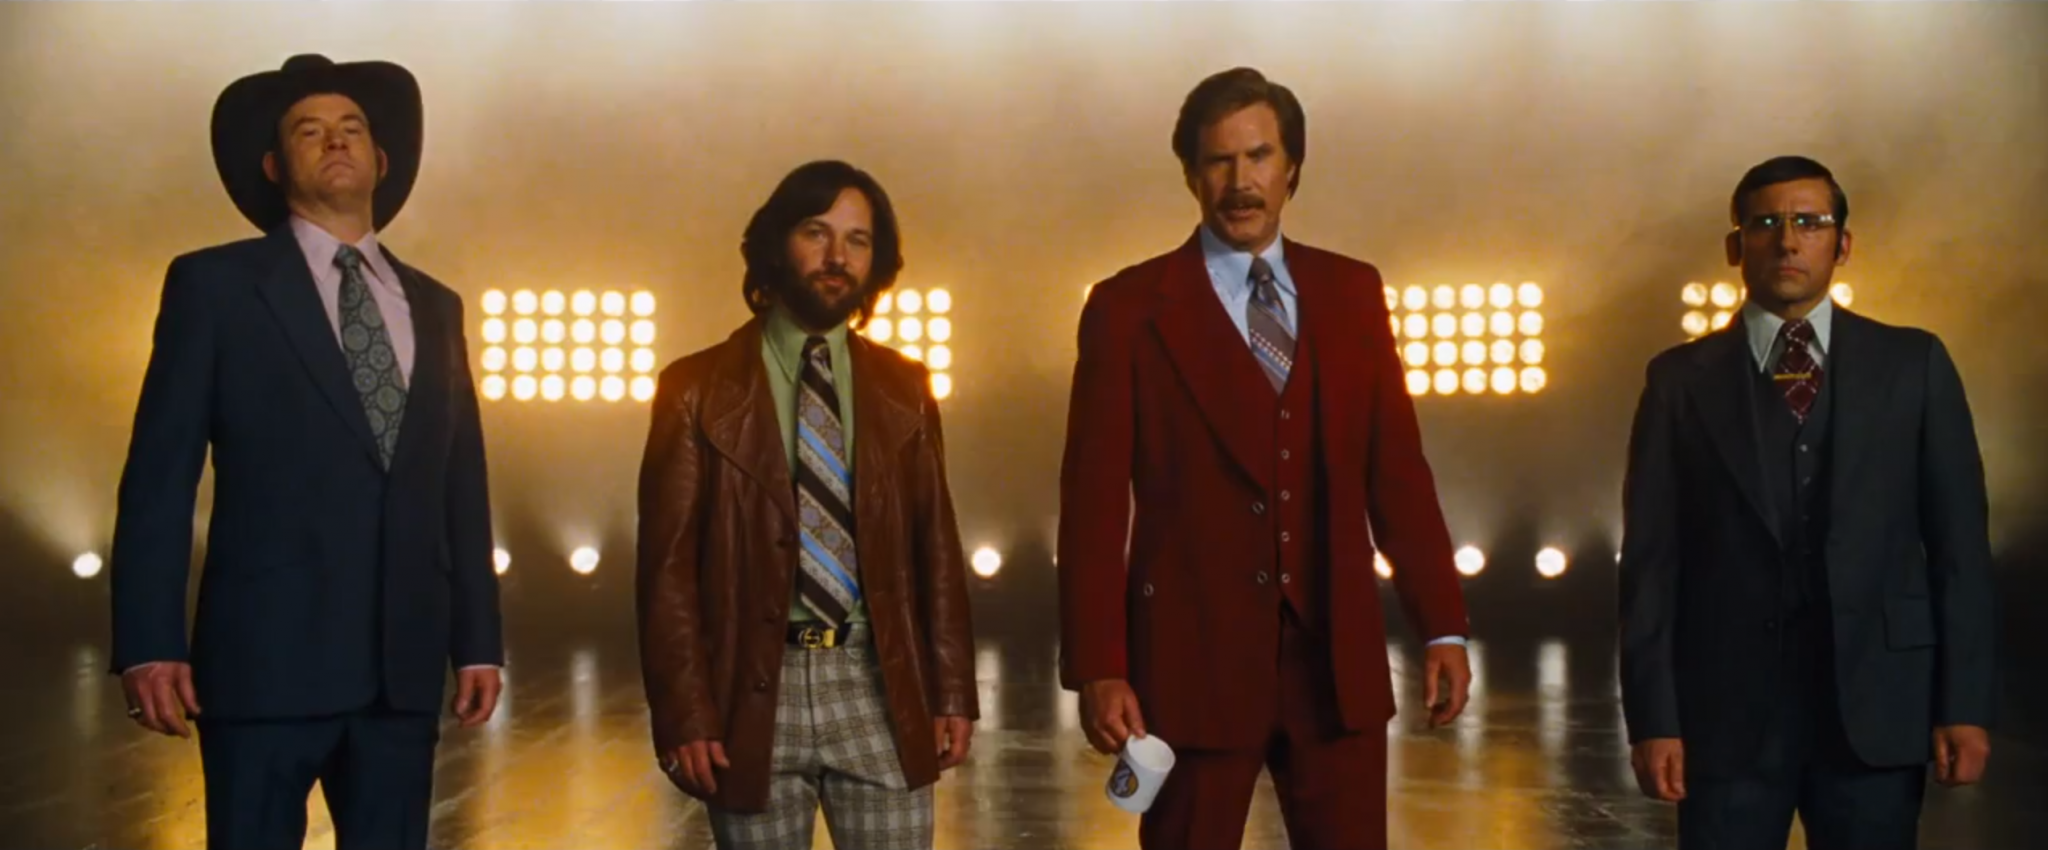 Film Review Anchorman 2 The Legend Continues 2013 Film Blerg